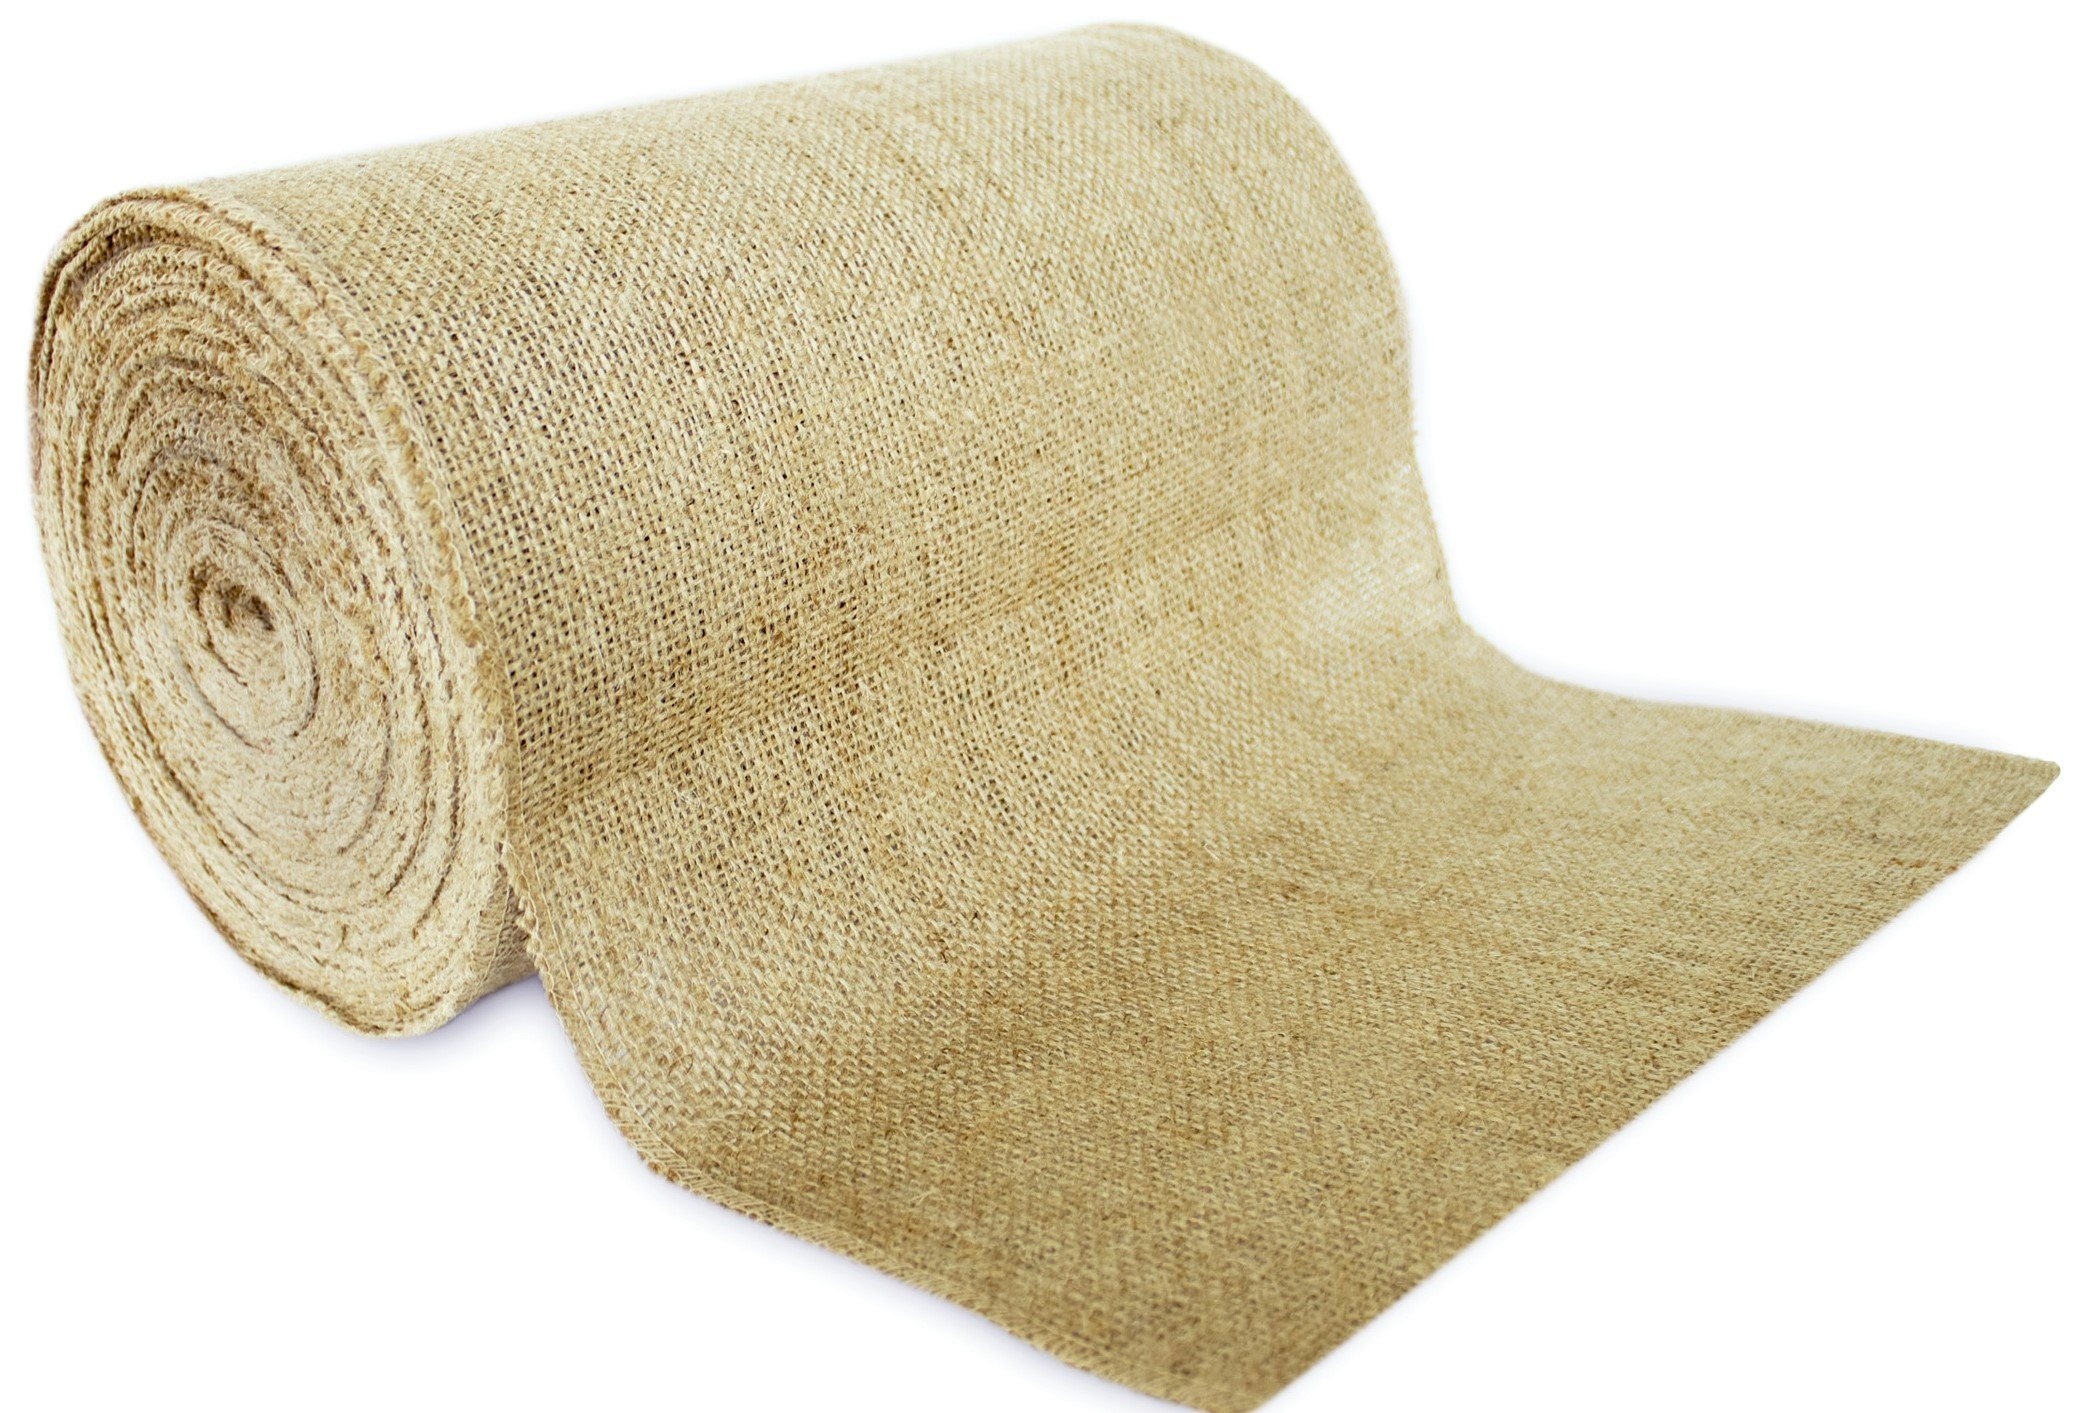 14'' No-Fray Burlap Roll Table Runner, 14 inches by 50 Yards, Placemat, Craft Fabric by Burlap and Beyond LLC (Image #1)